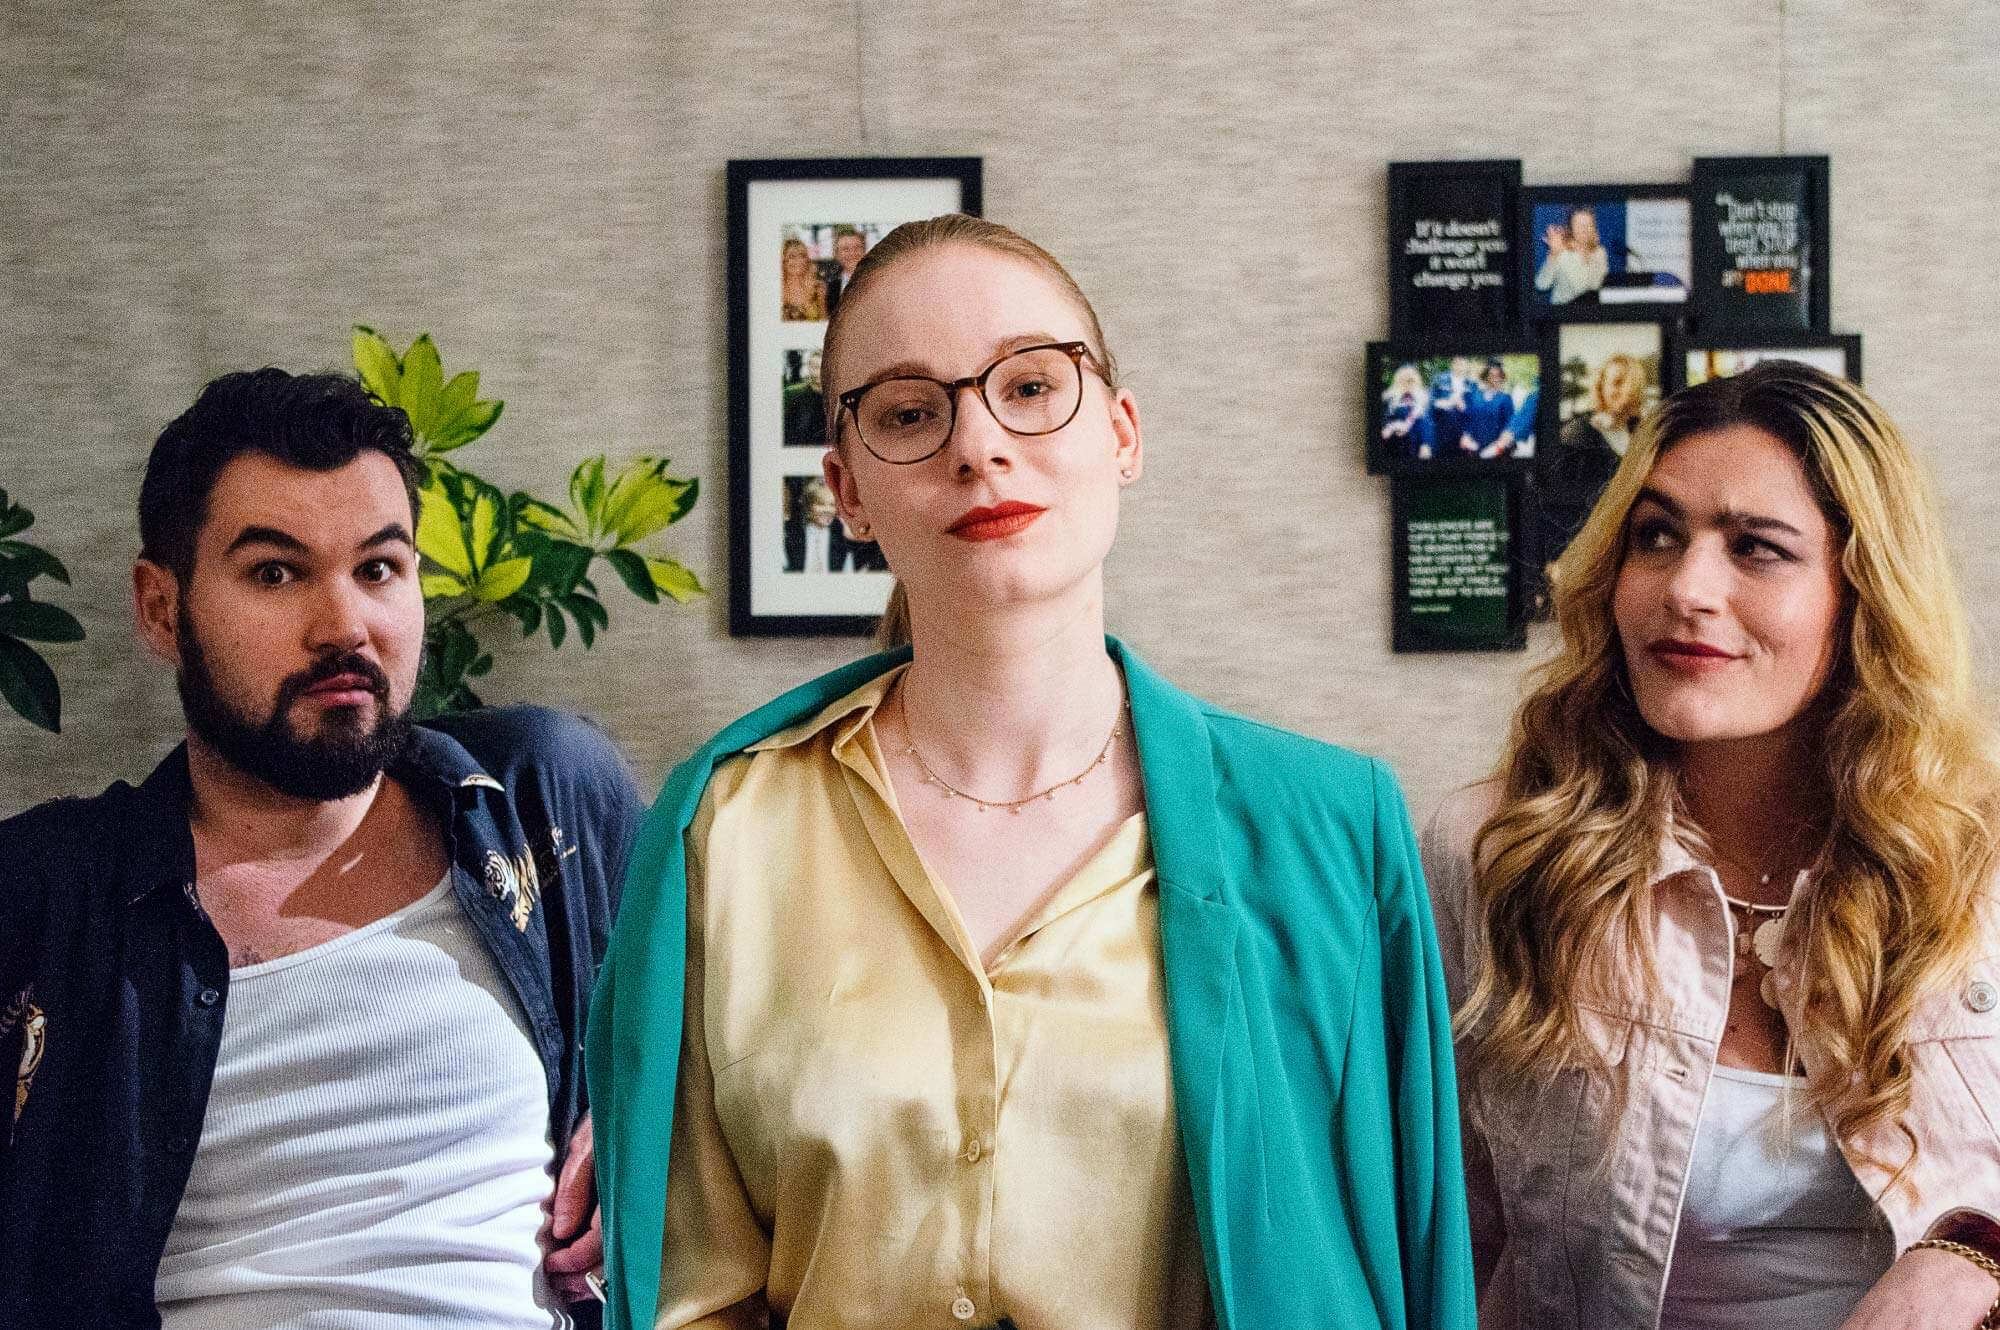 Three people pose in a living room. Professional sitcom makeup provided by Lunar Dragon.